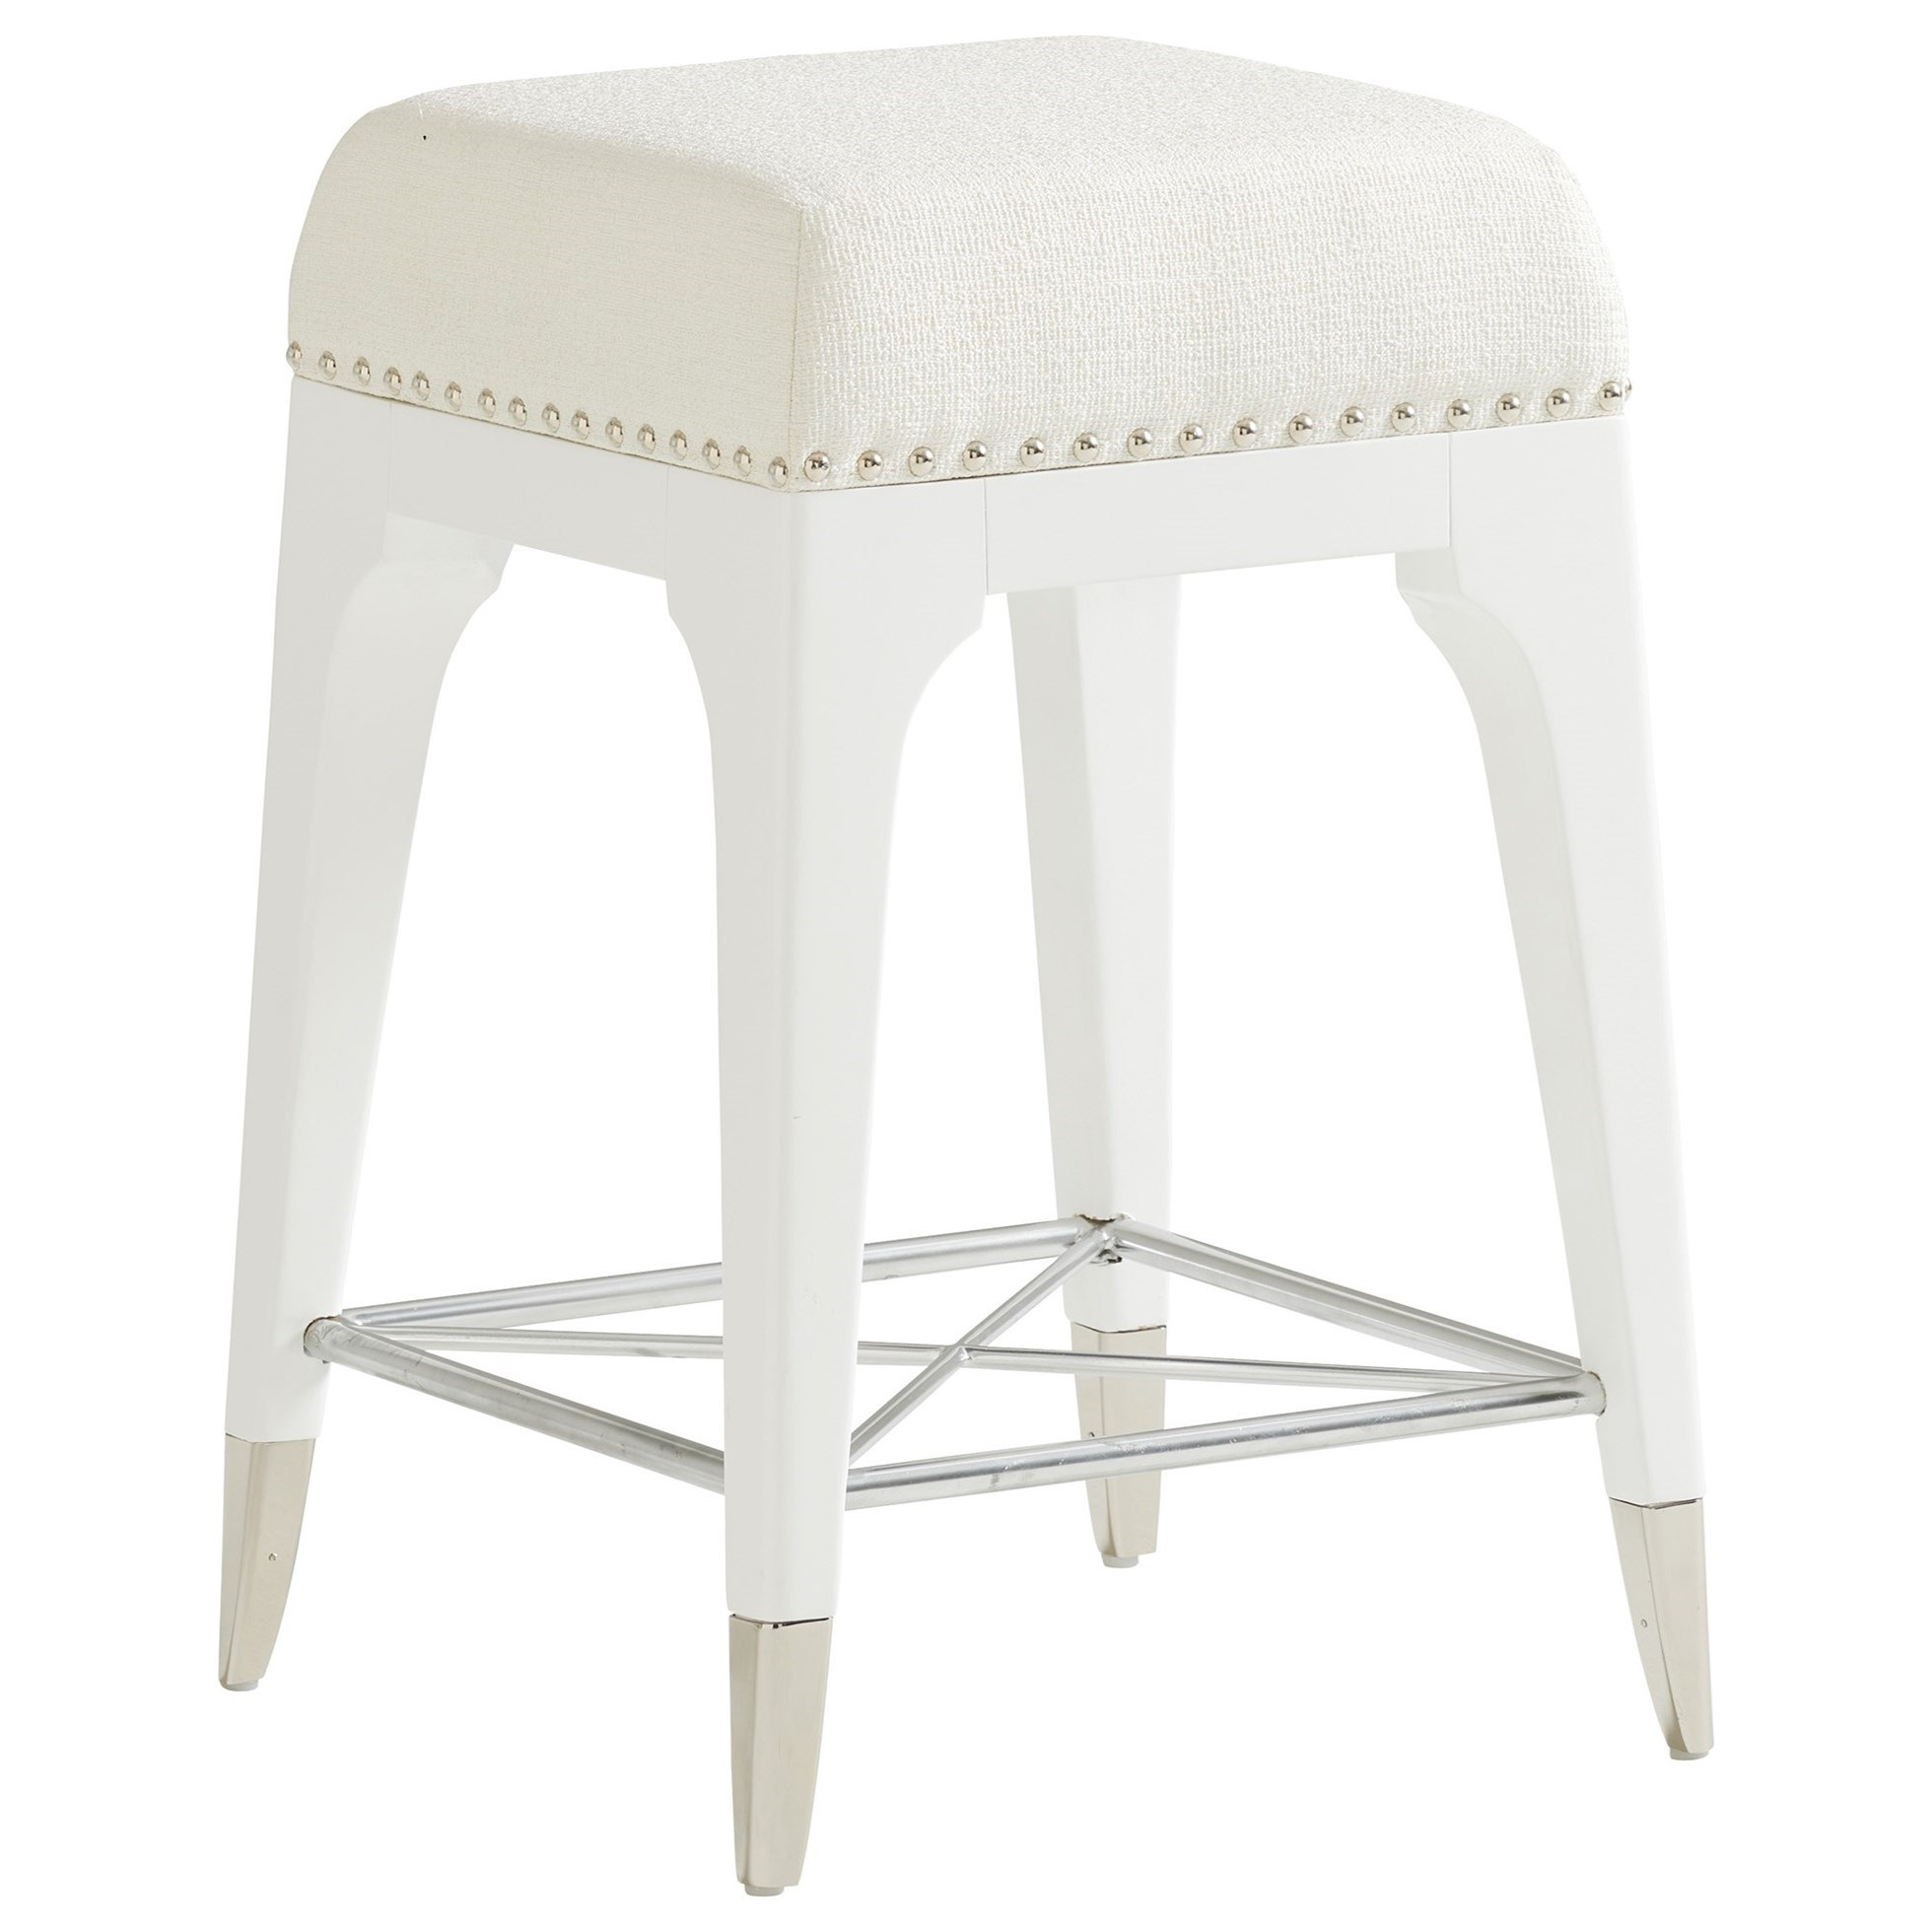 Avondale Northbrook Counter Stool by Lexington at Baer's Furniture